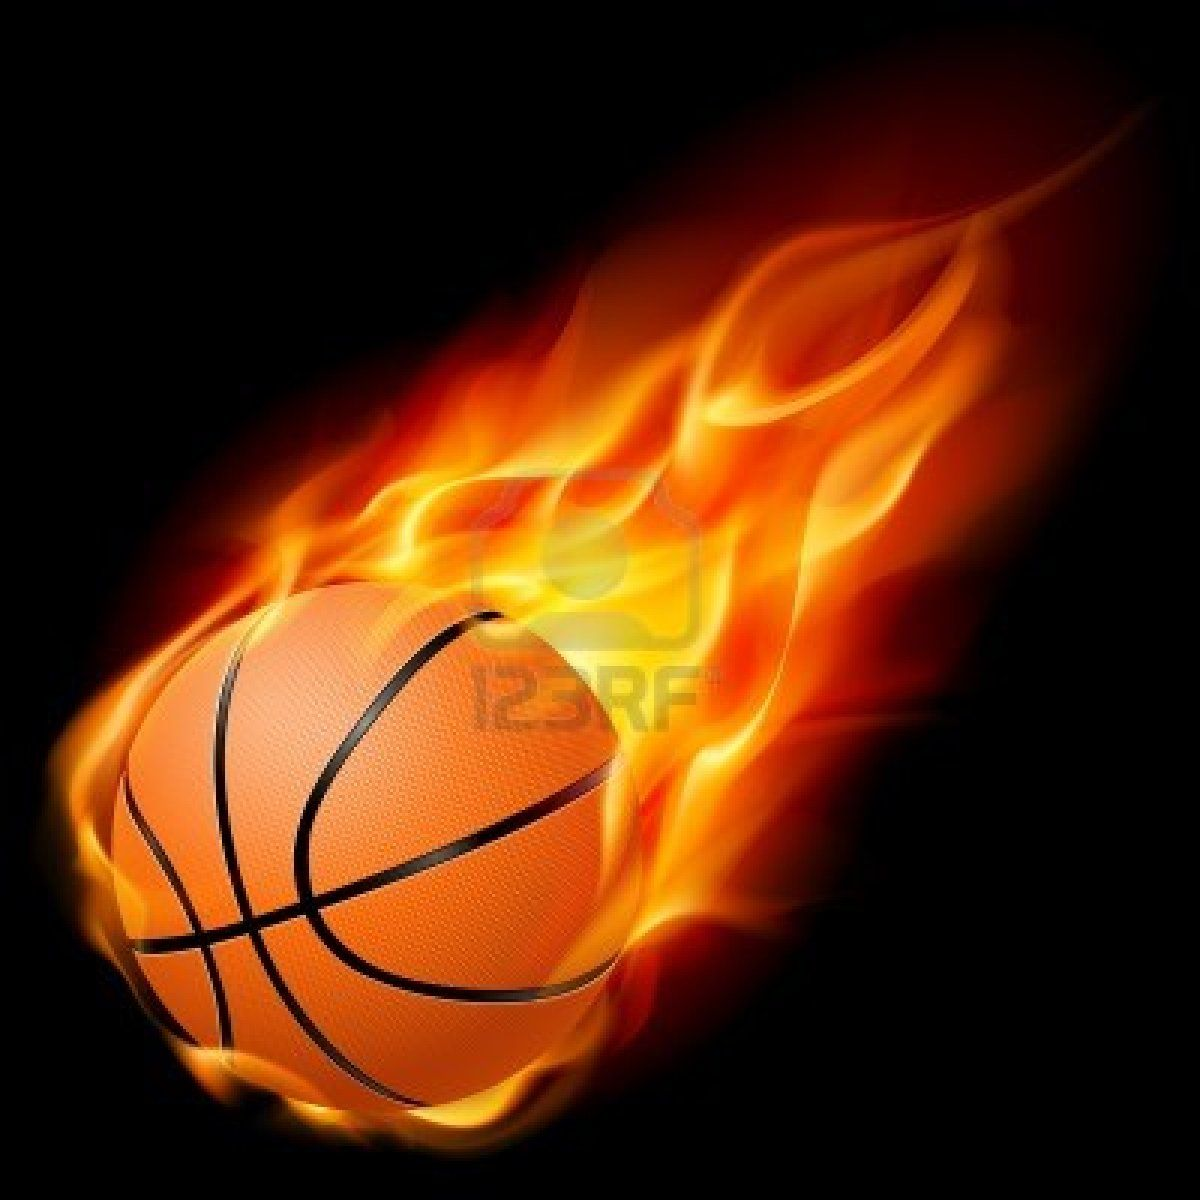 Flying Basketball On Fire Illustration On Black Background Basketball Locker Decorations Basketball Tattoos Basketball